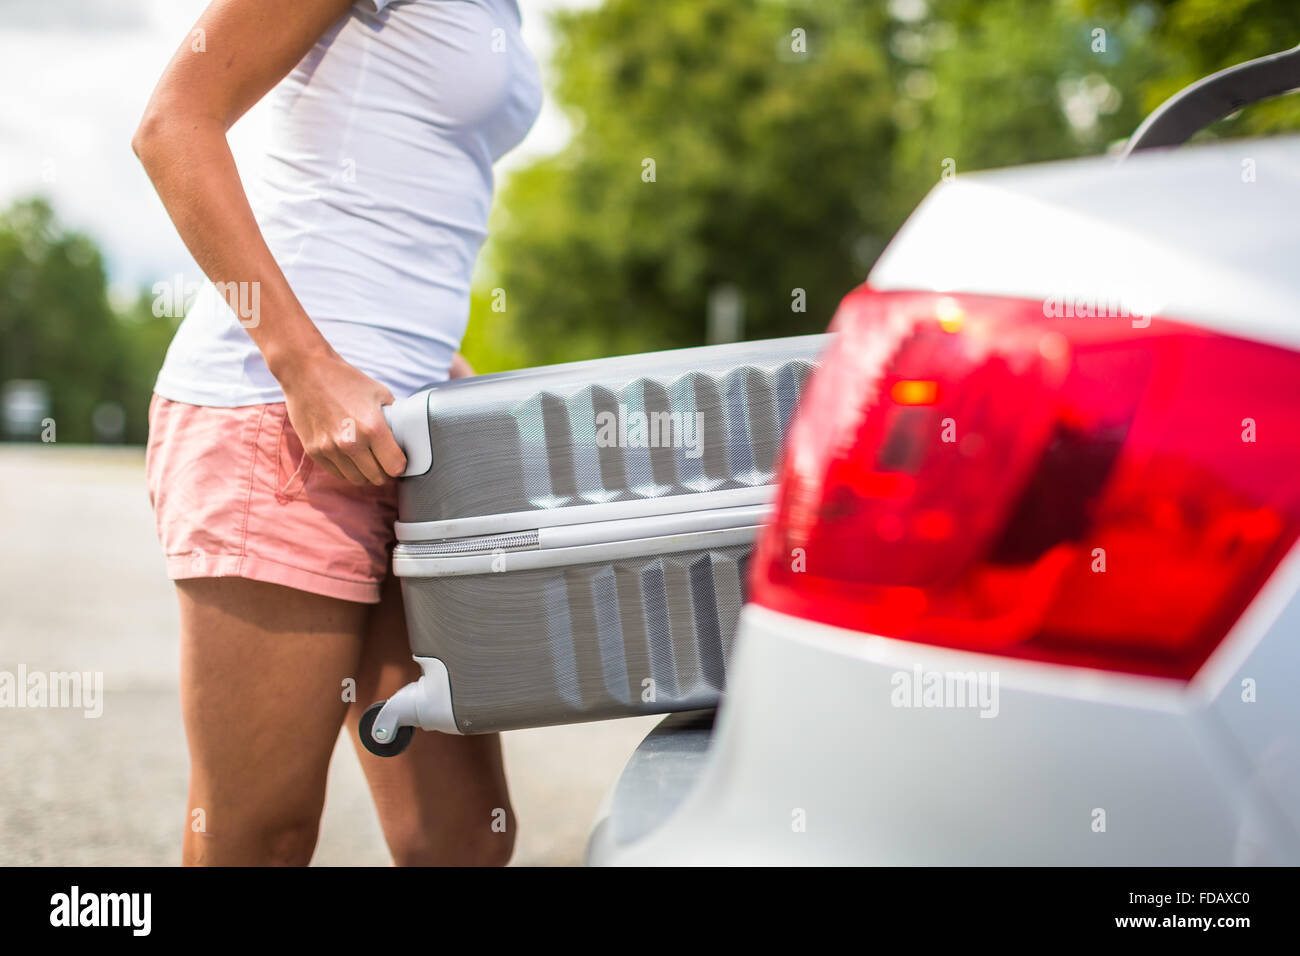 Young woman putting a have suitcase into her car's trunk - Stock Image